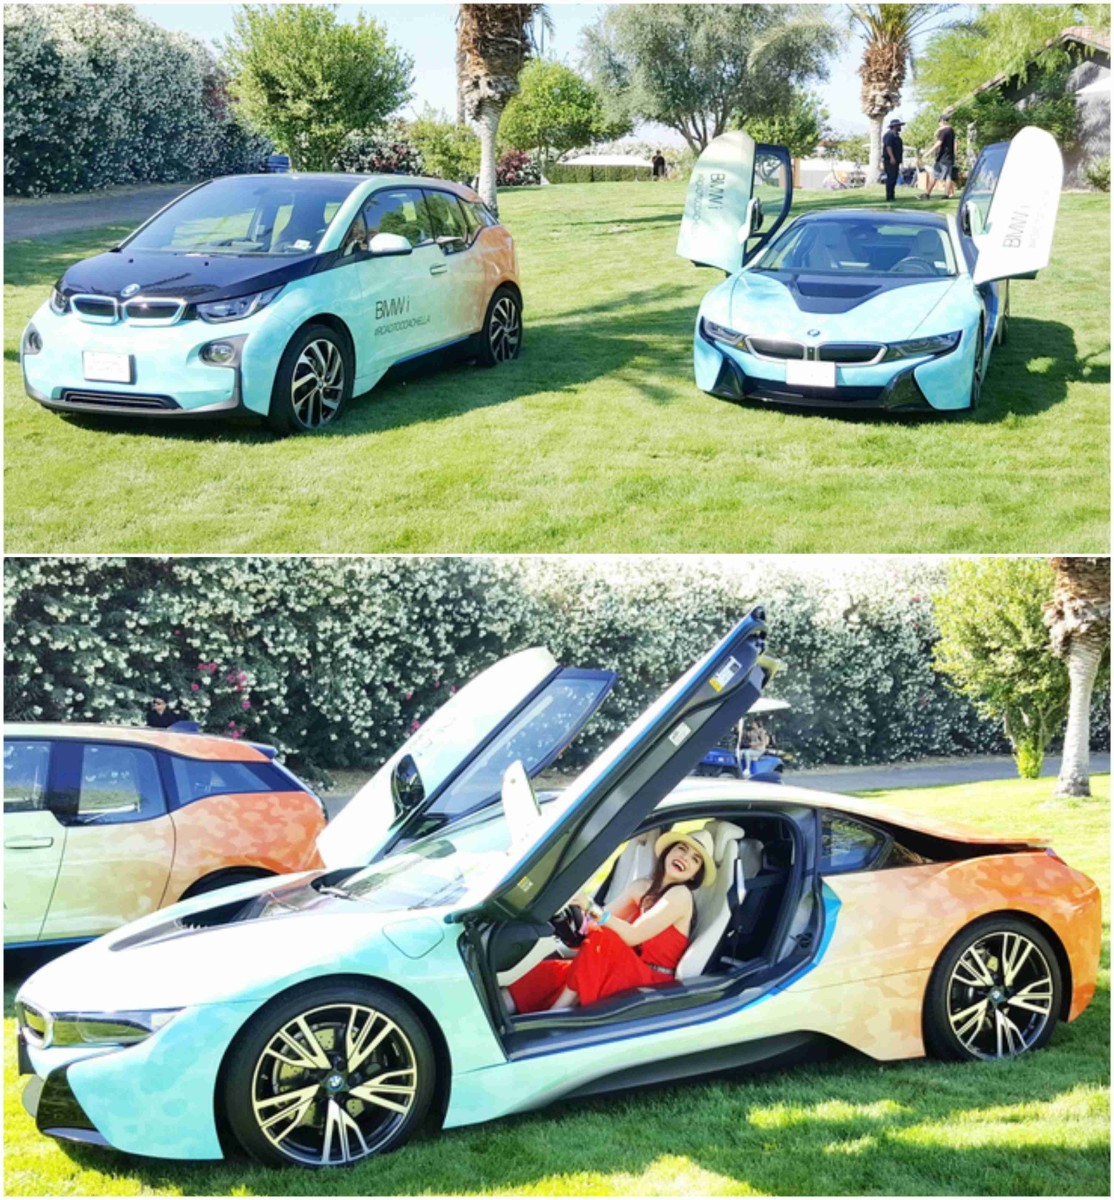 the BMW i3 is great and but it's all about the i8...